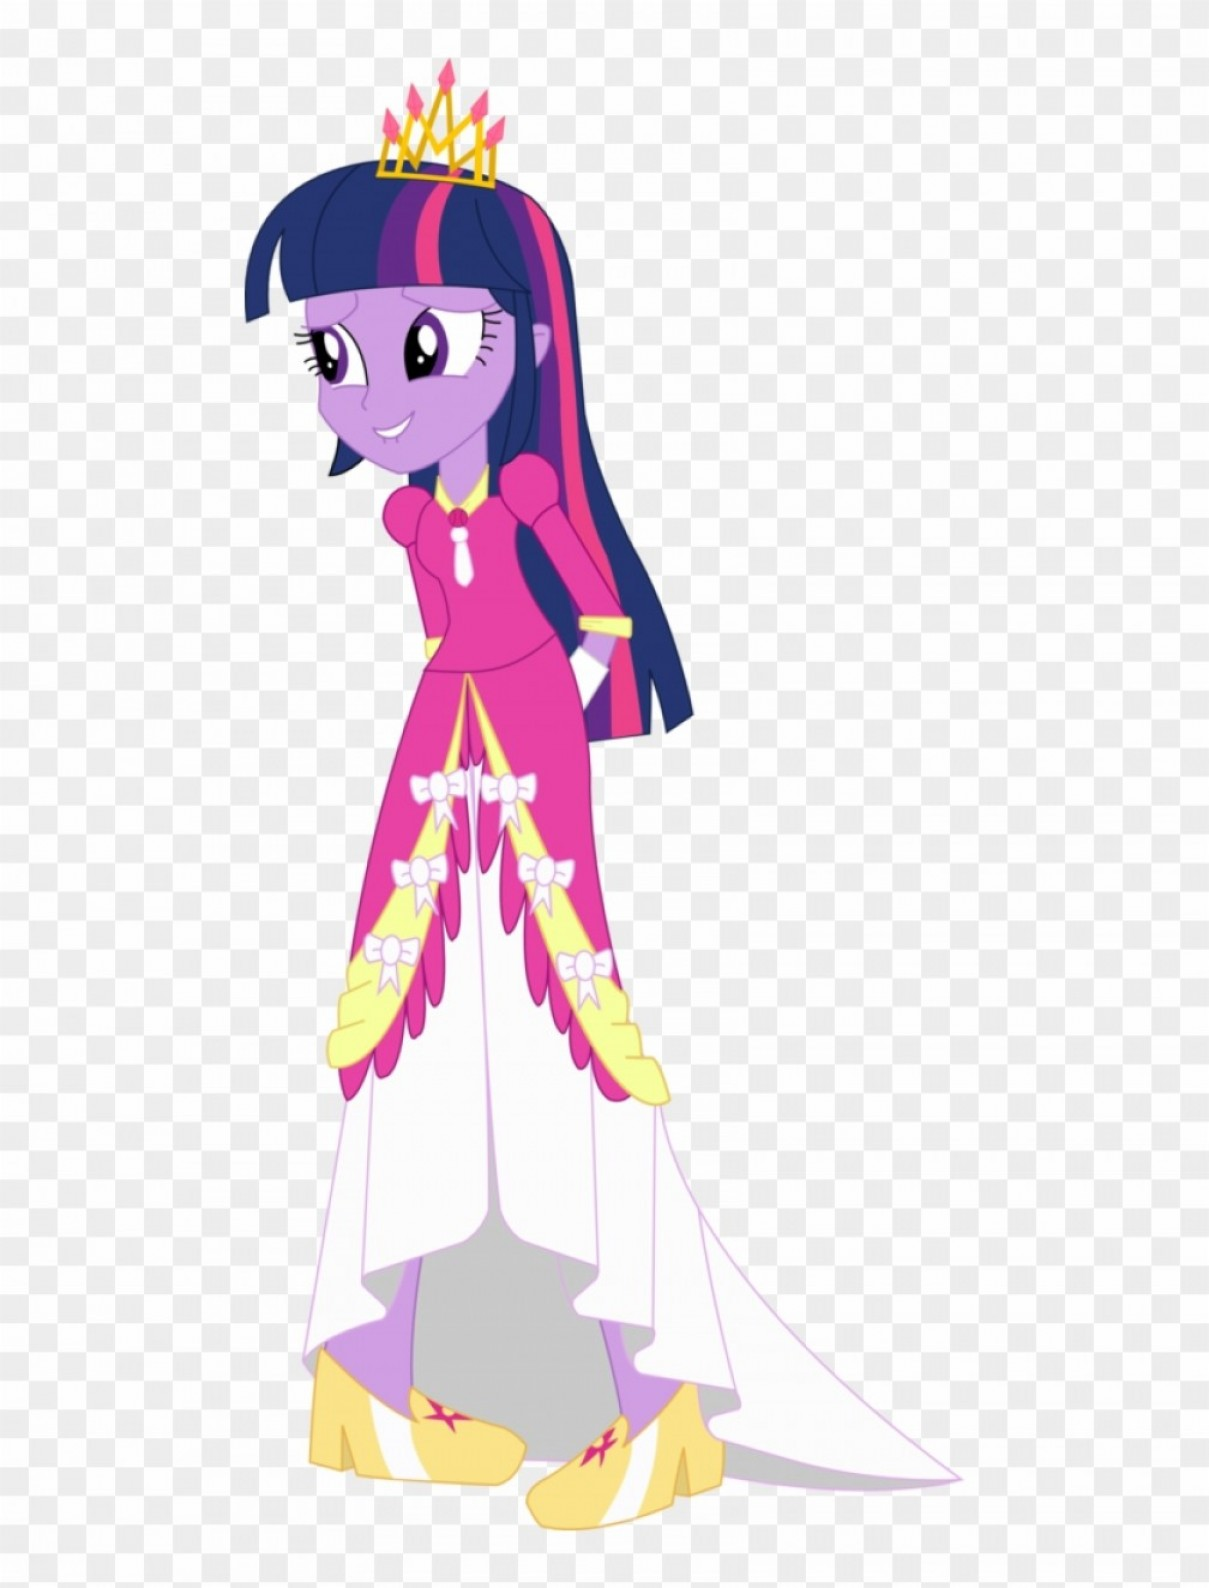 Equestria Girls Applejack Vector: Miamakzisketchmcreations Clothes Coronation Dress Dress My Little Pony Equestria Girl Twilight In